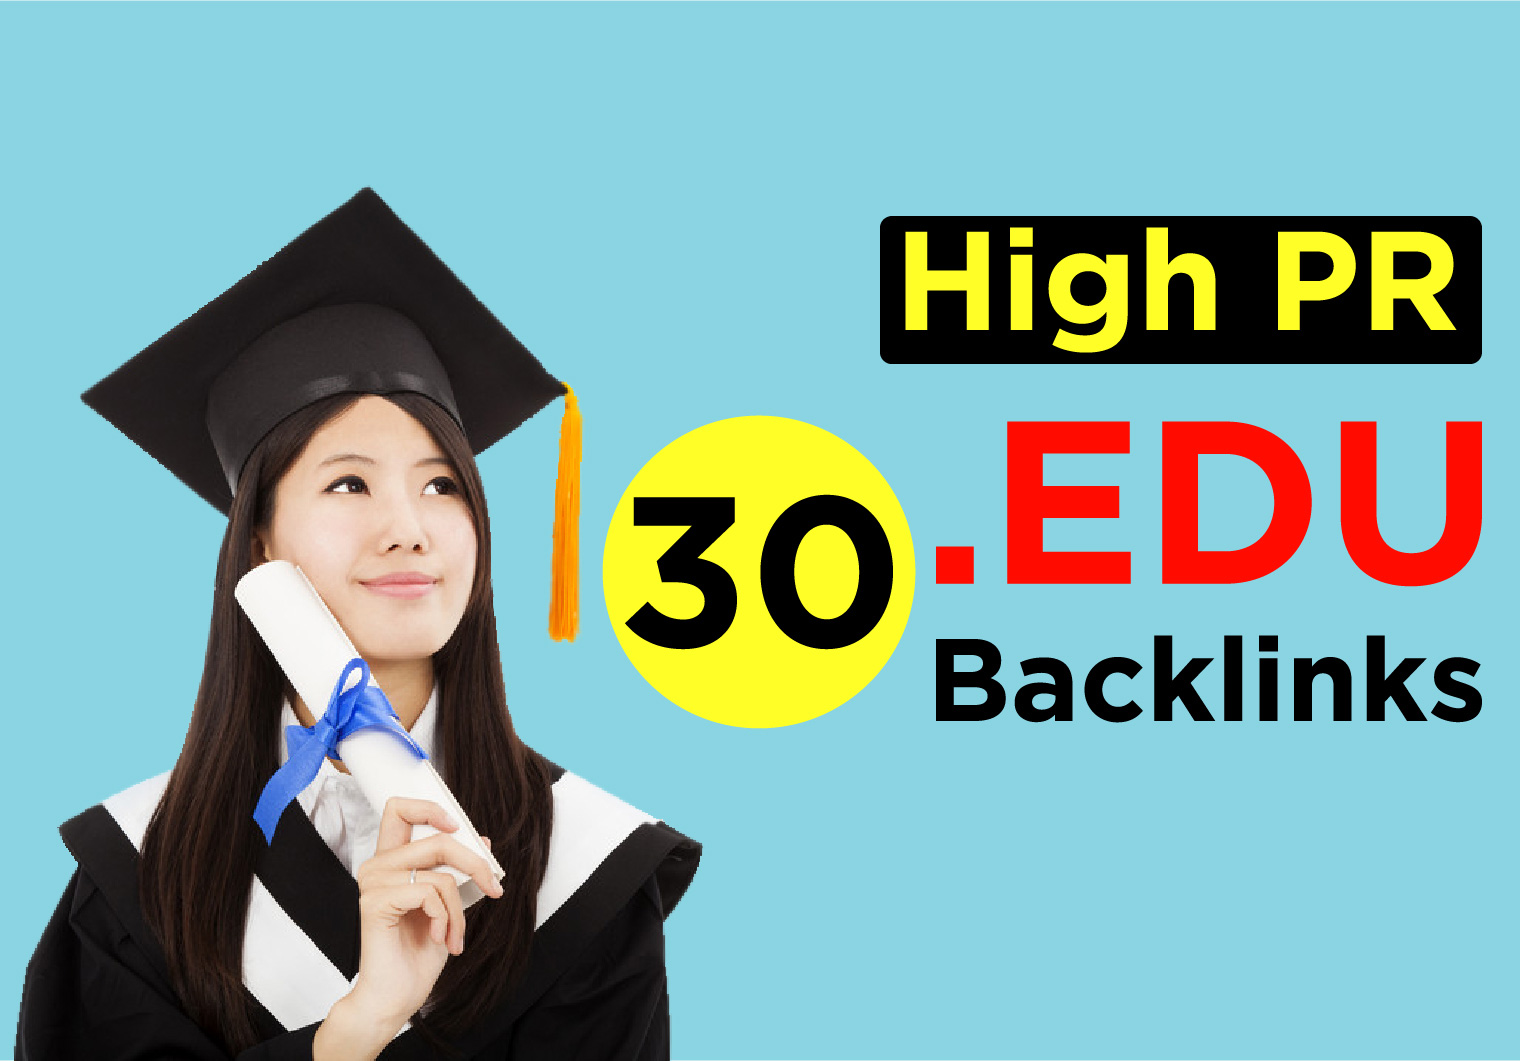 USA Based 30 Edu Backlinks High PR Safe SEO Backlinks - Boost Your Google Ranking